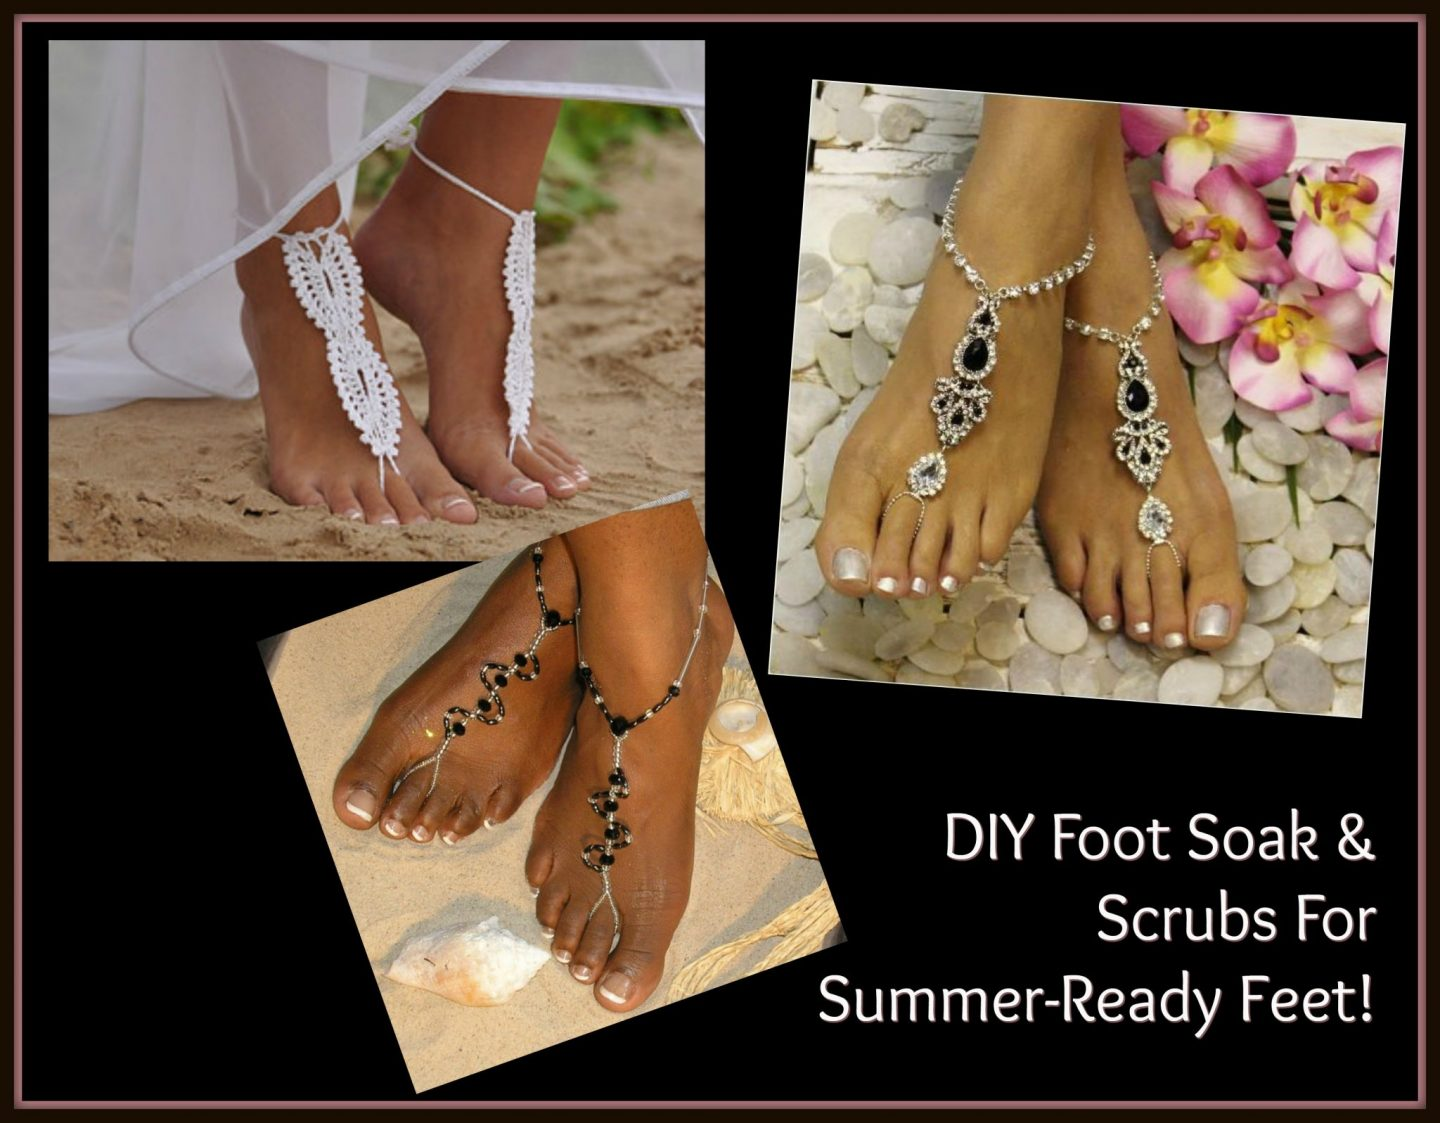 DIY Foot Soak & Scrubs For Summer-Ready Feet!